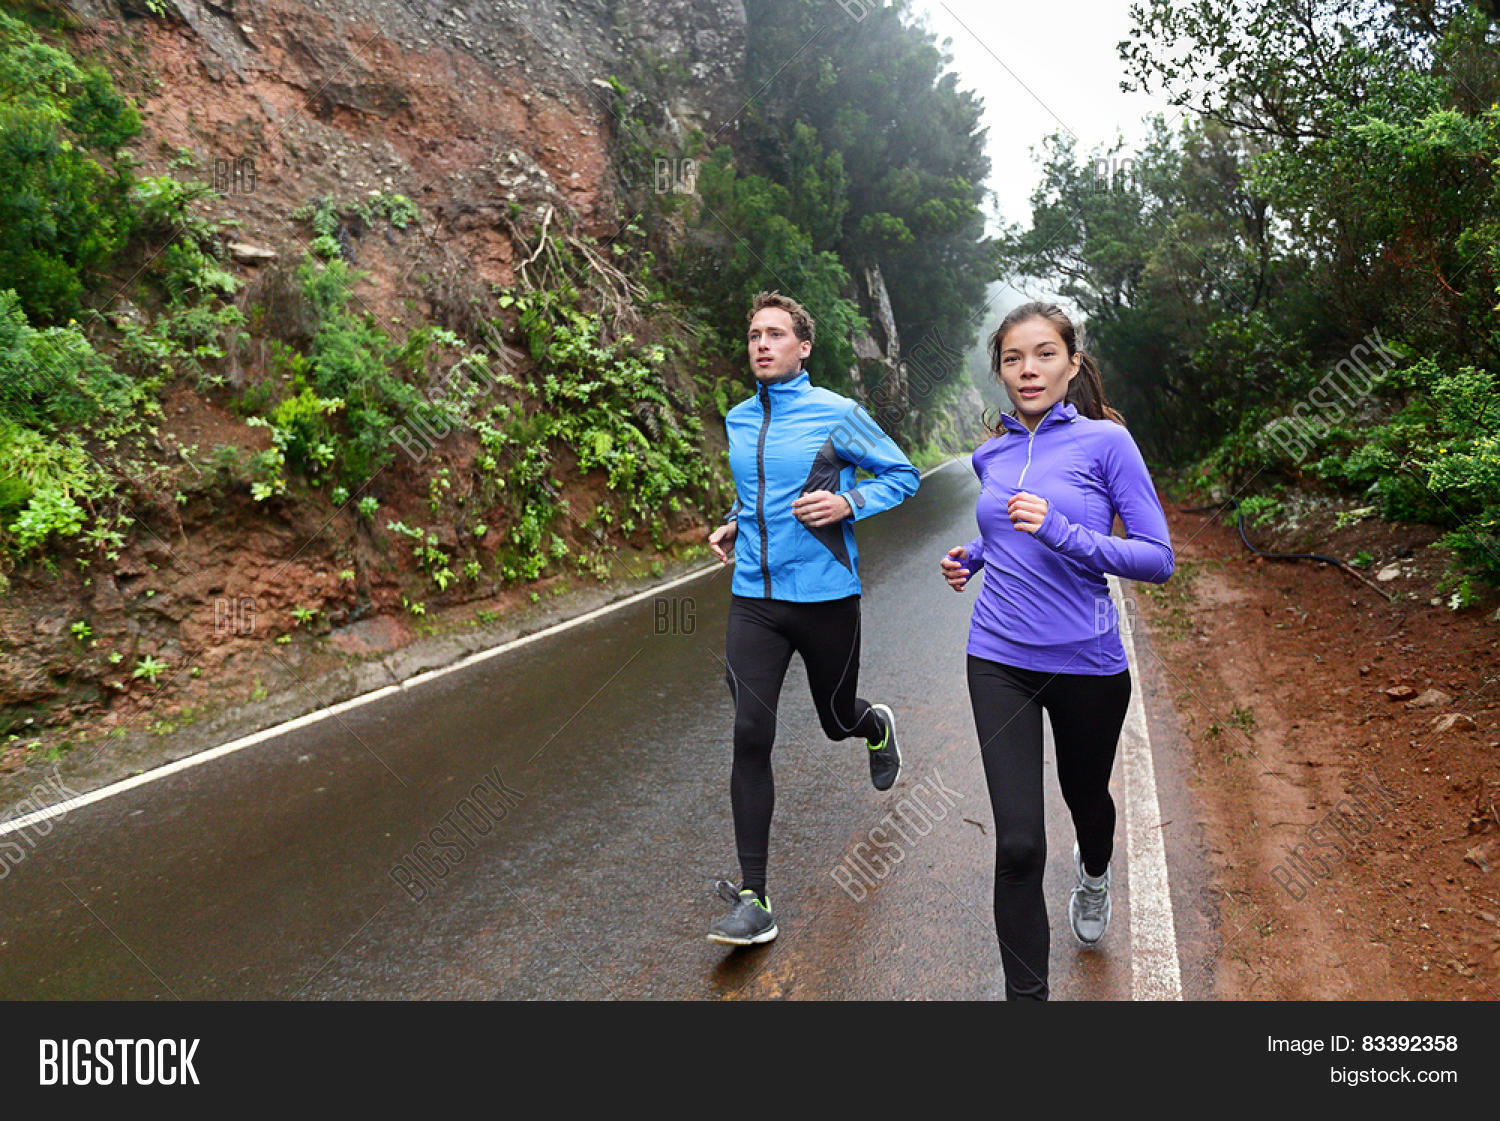 b7cf03214b19f Healthy lifestyle people running on country road exercising. Runners  jogging on mountain road training for